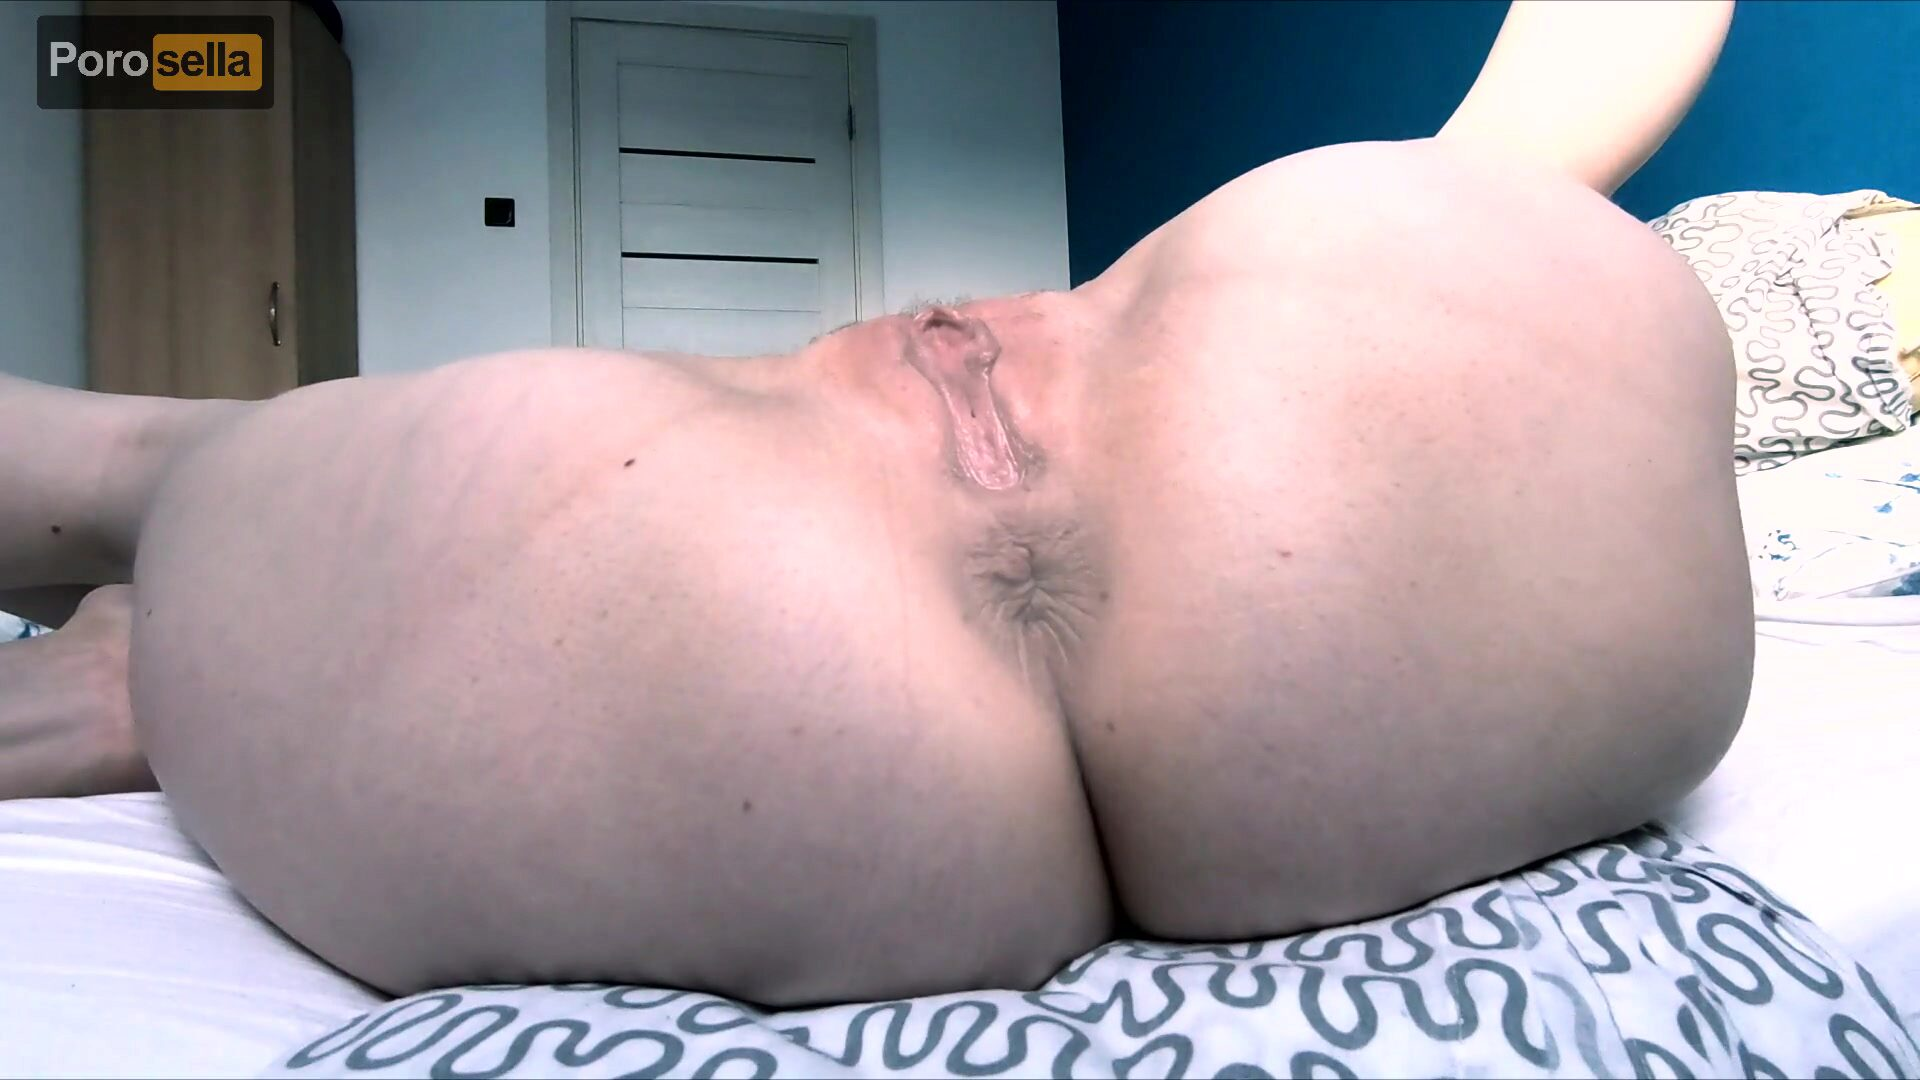 Amateur Teen Pussy Eating Close up - Squirt & Creampie Cum